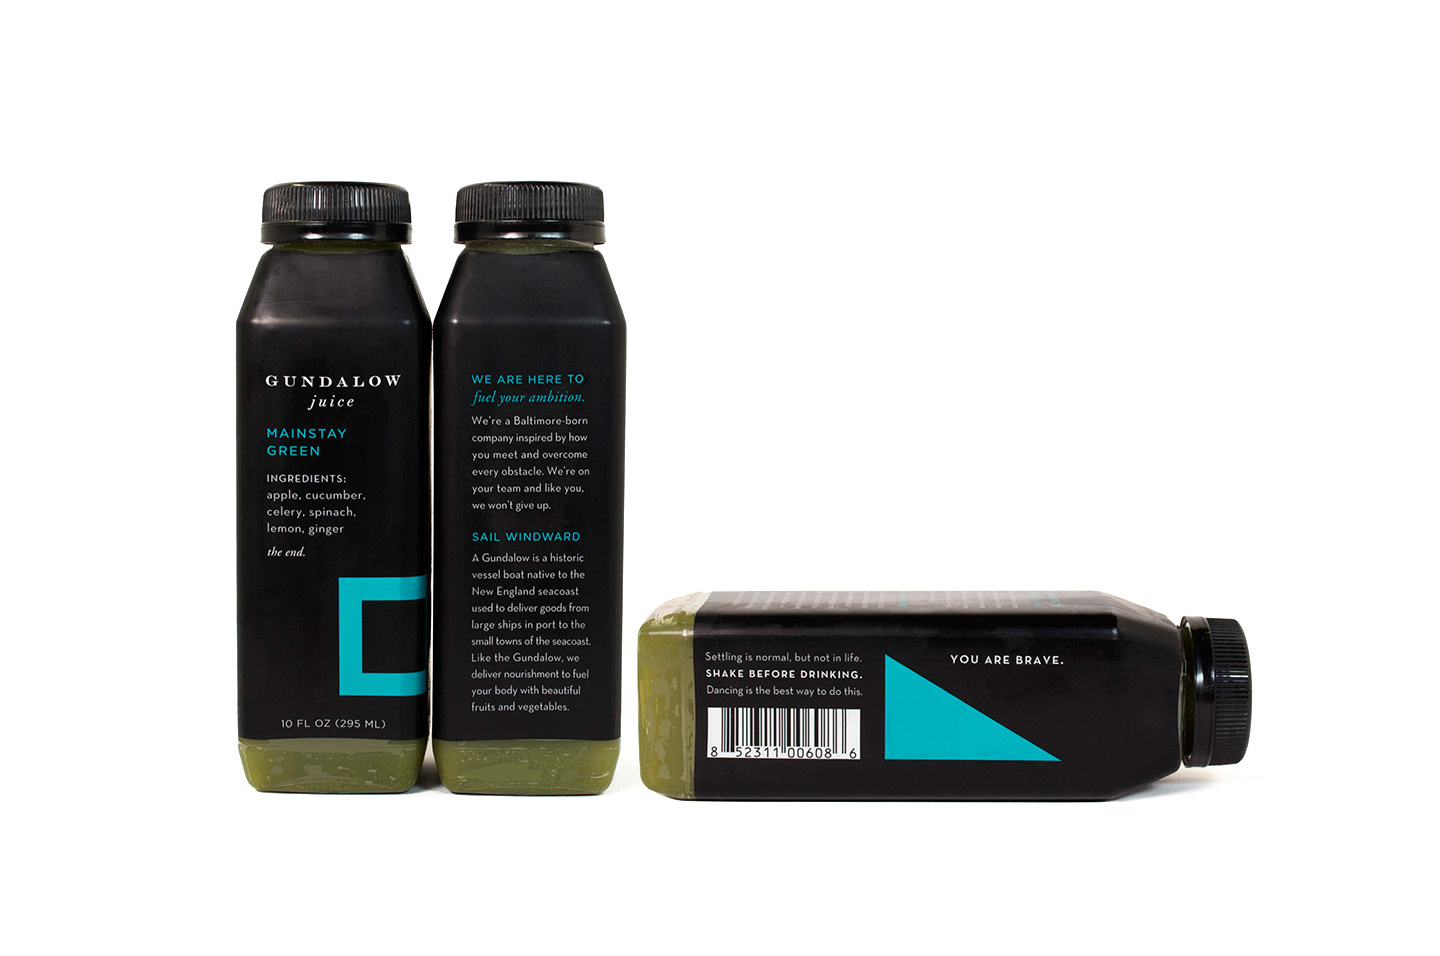 Gundalow Juice: Bottle Package Design for Mainstay Green